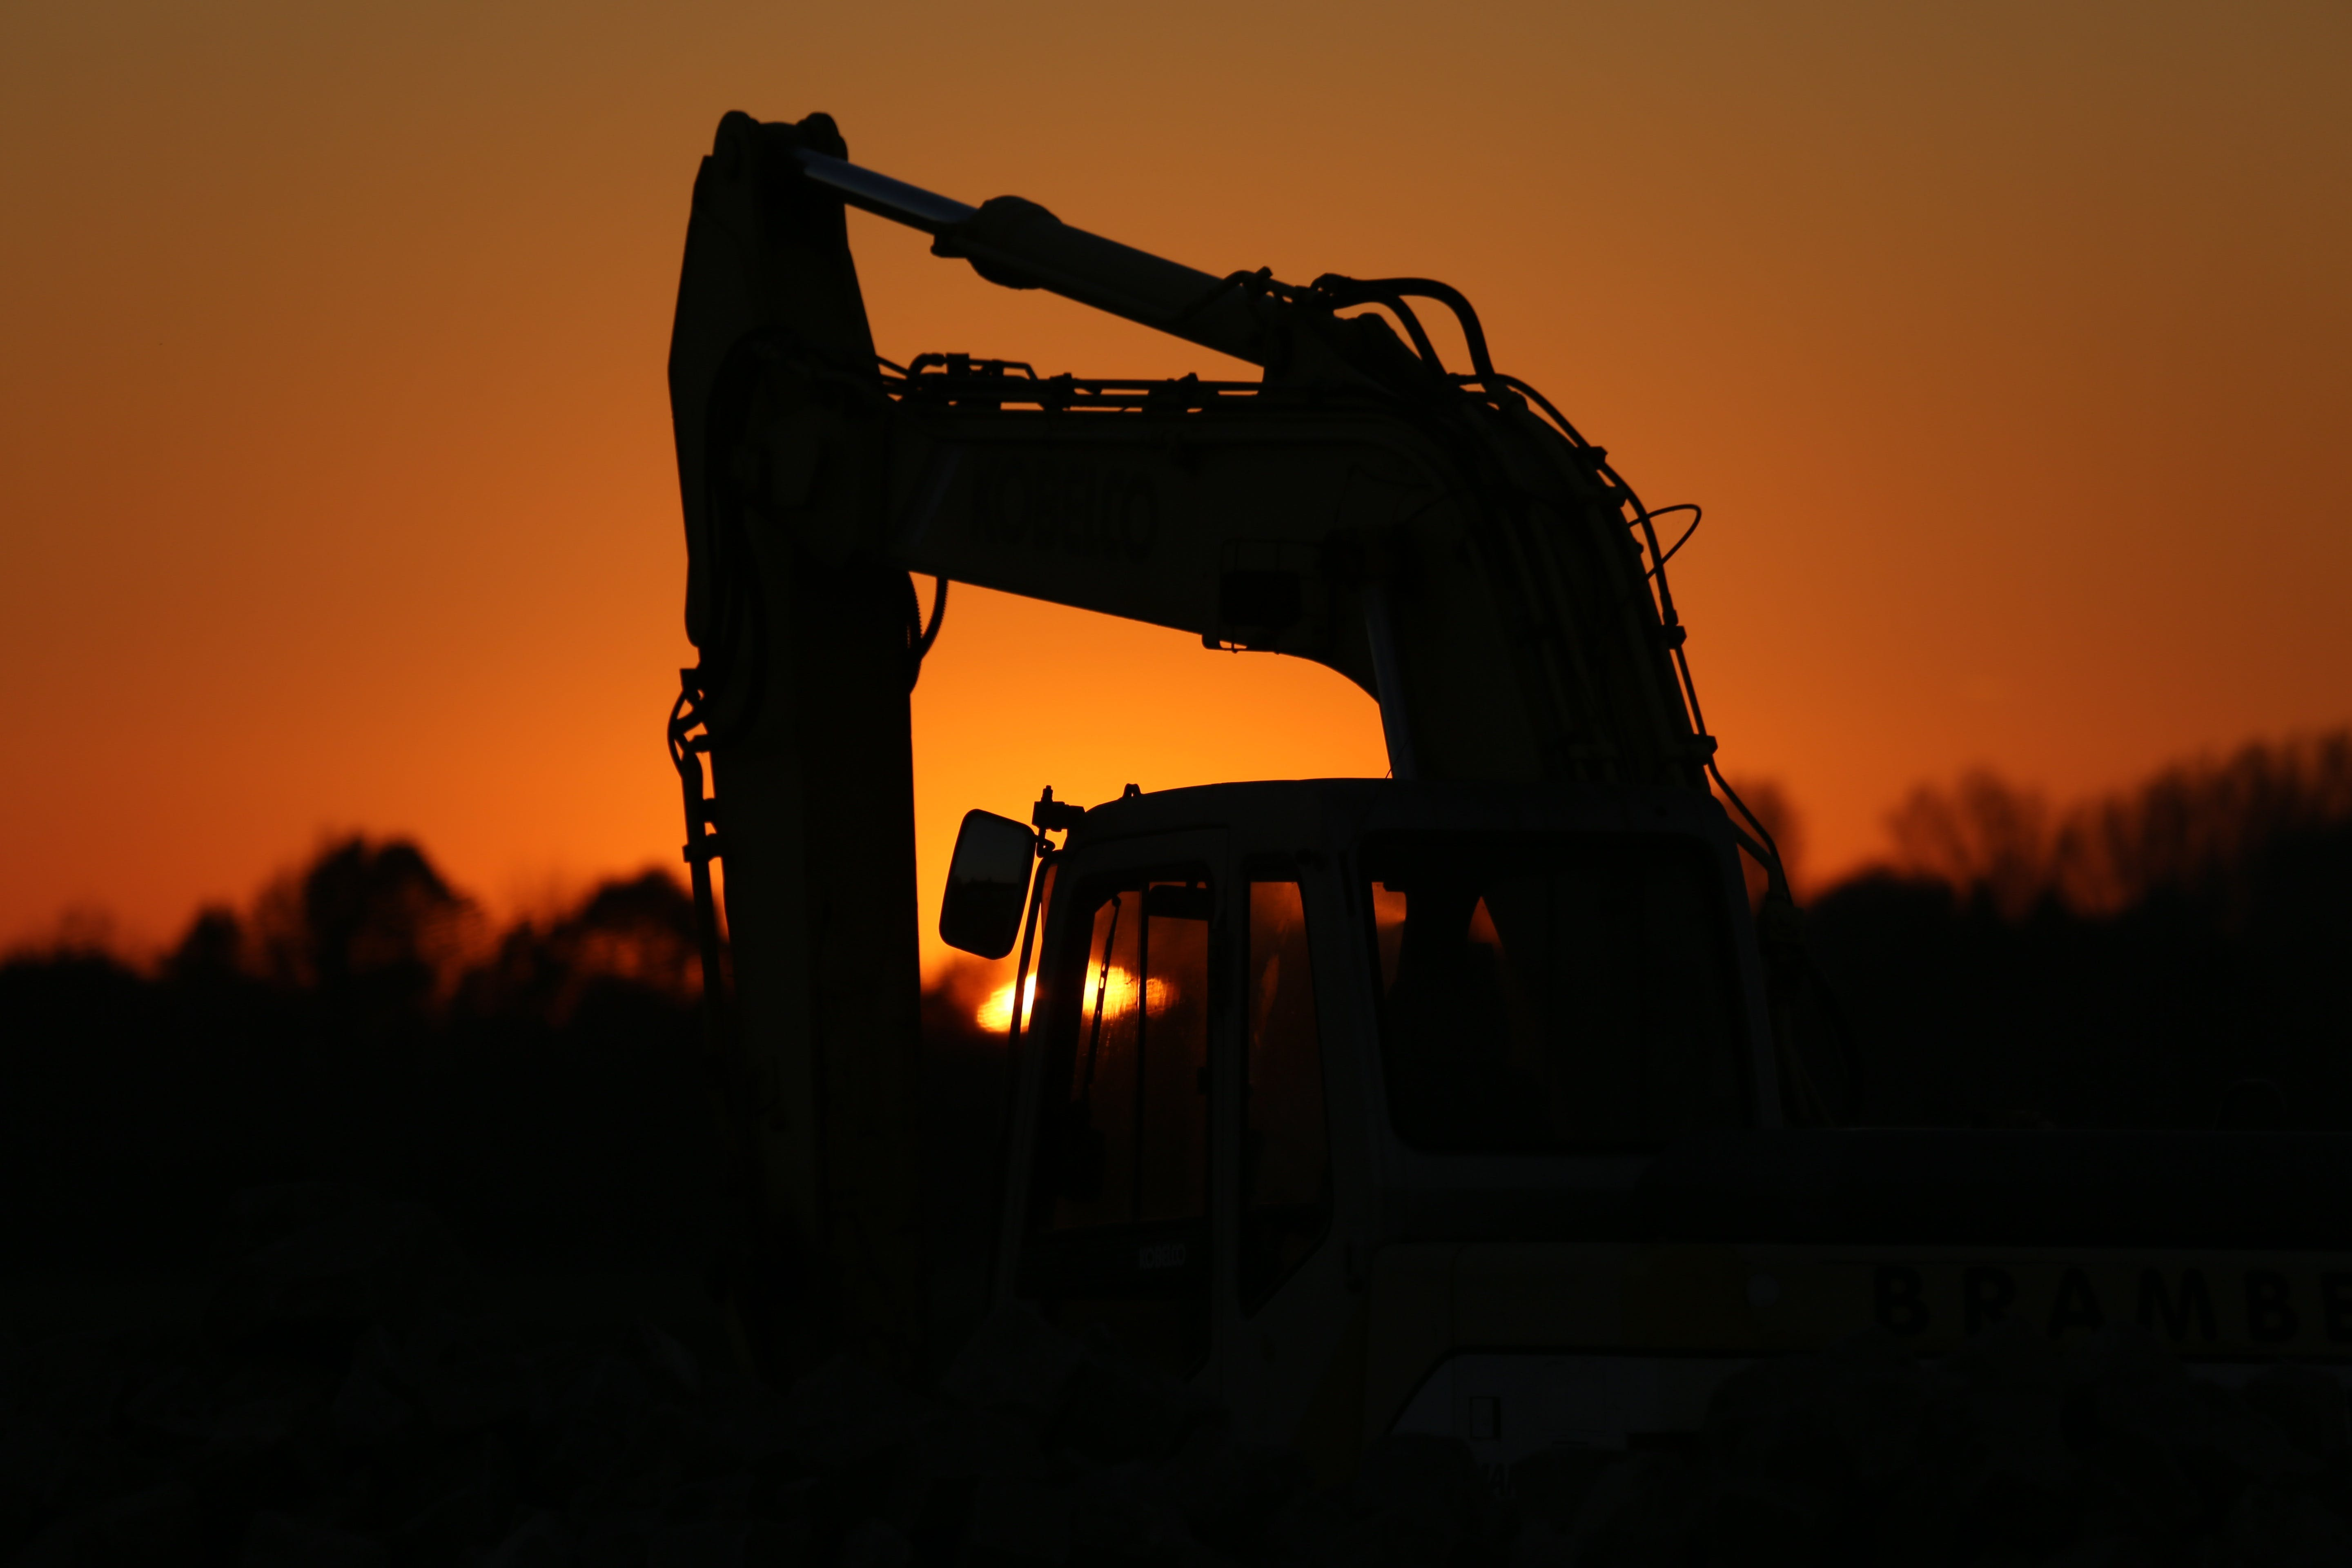 Silhouette of Truck during Sunset